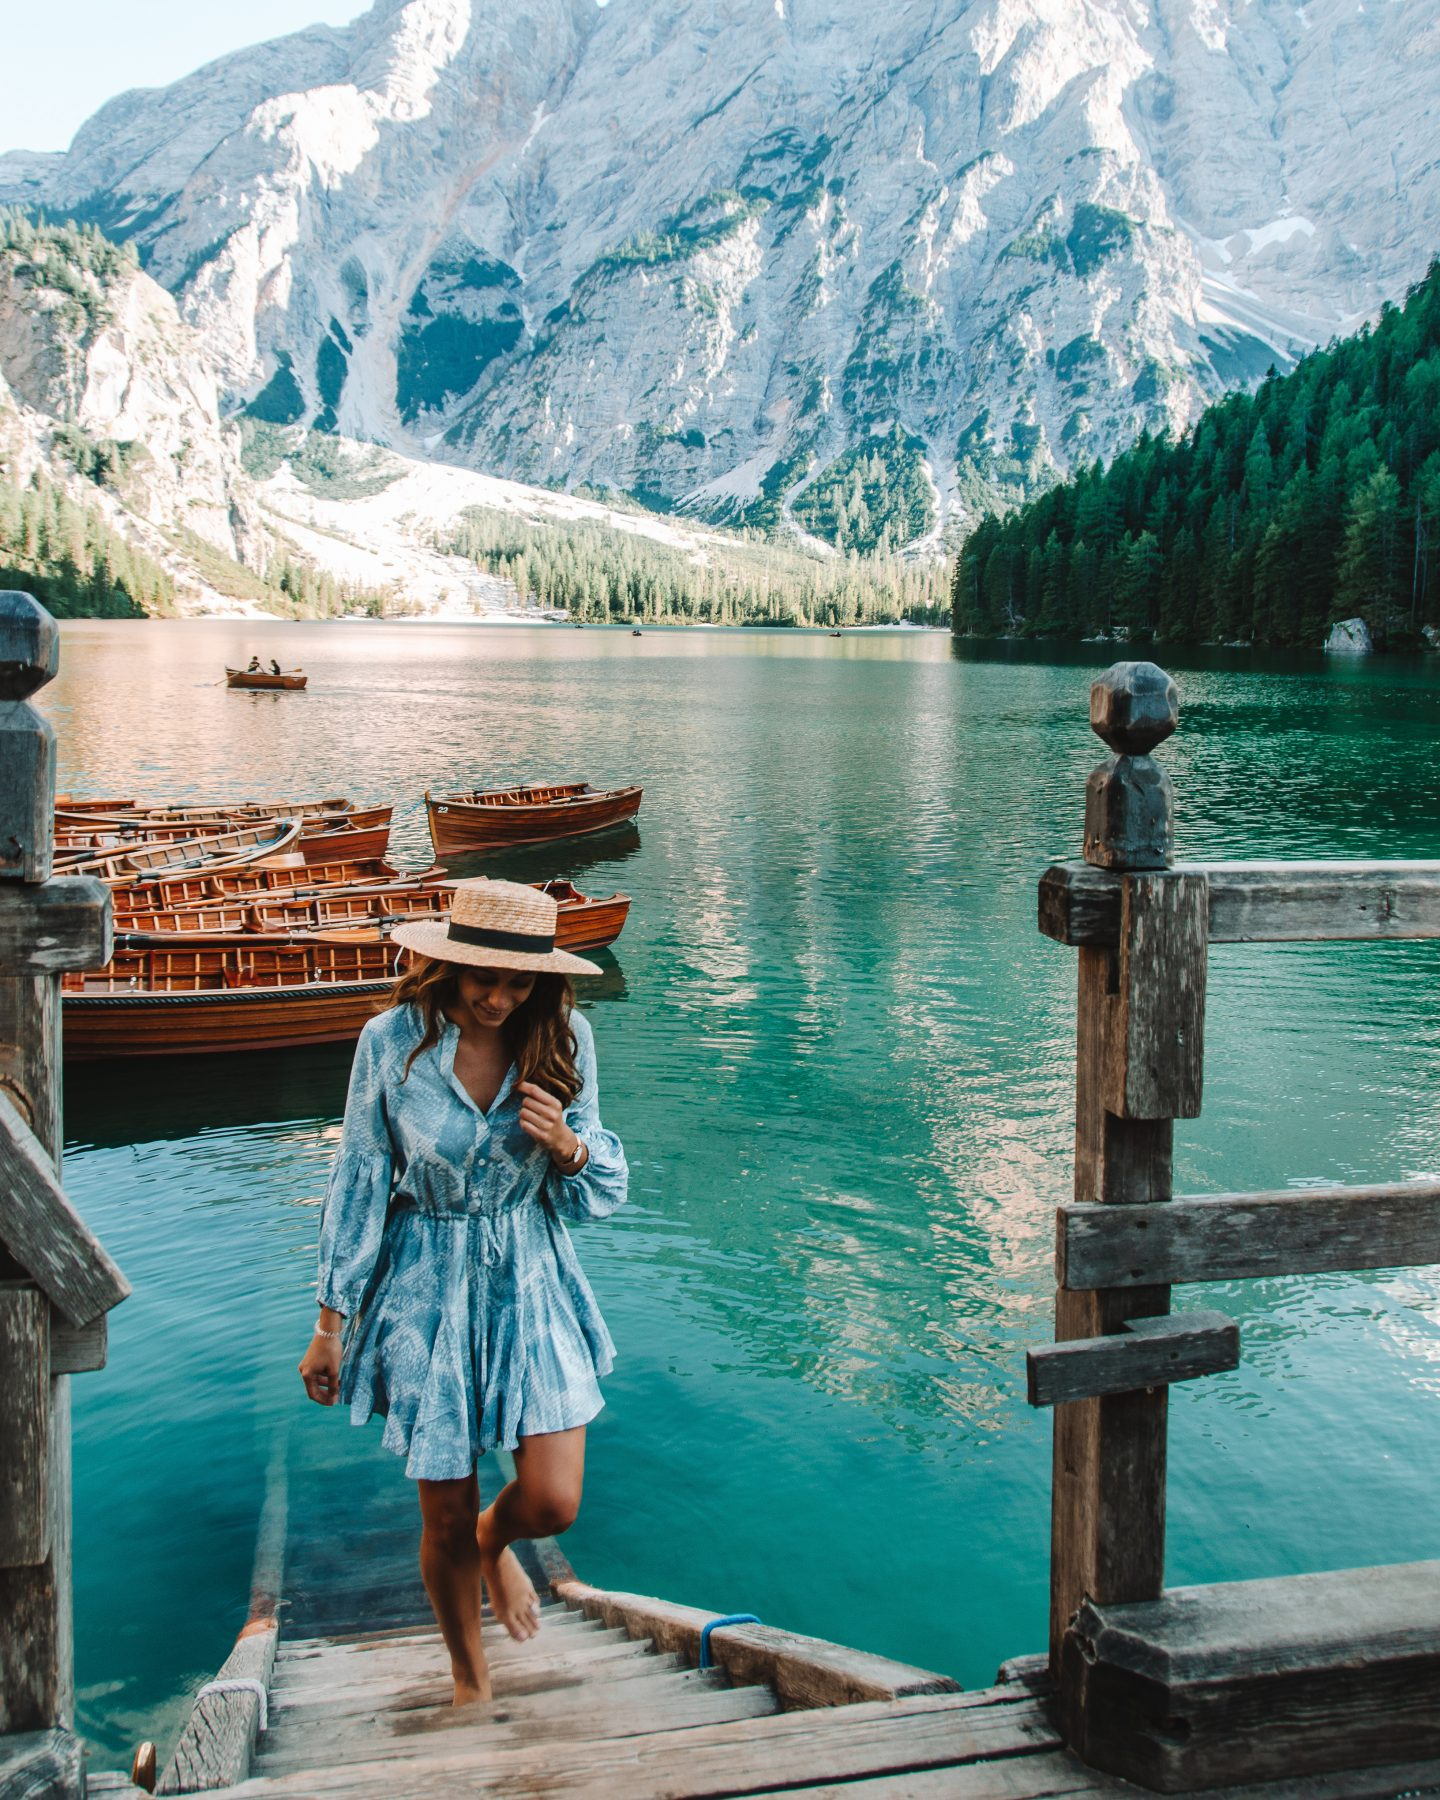 lago di braies and girl with blue dress